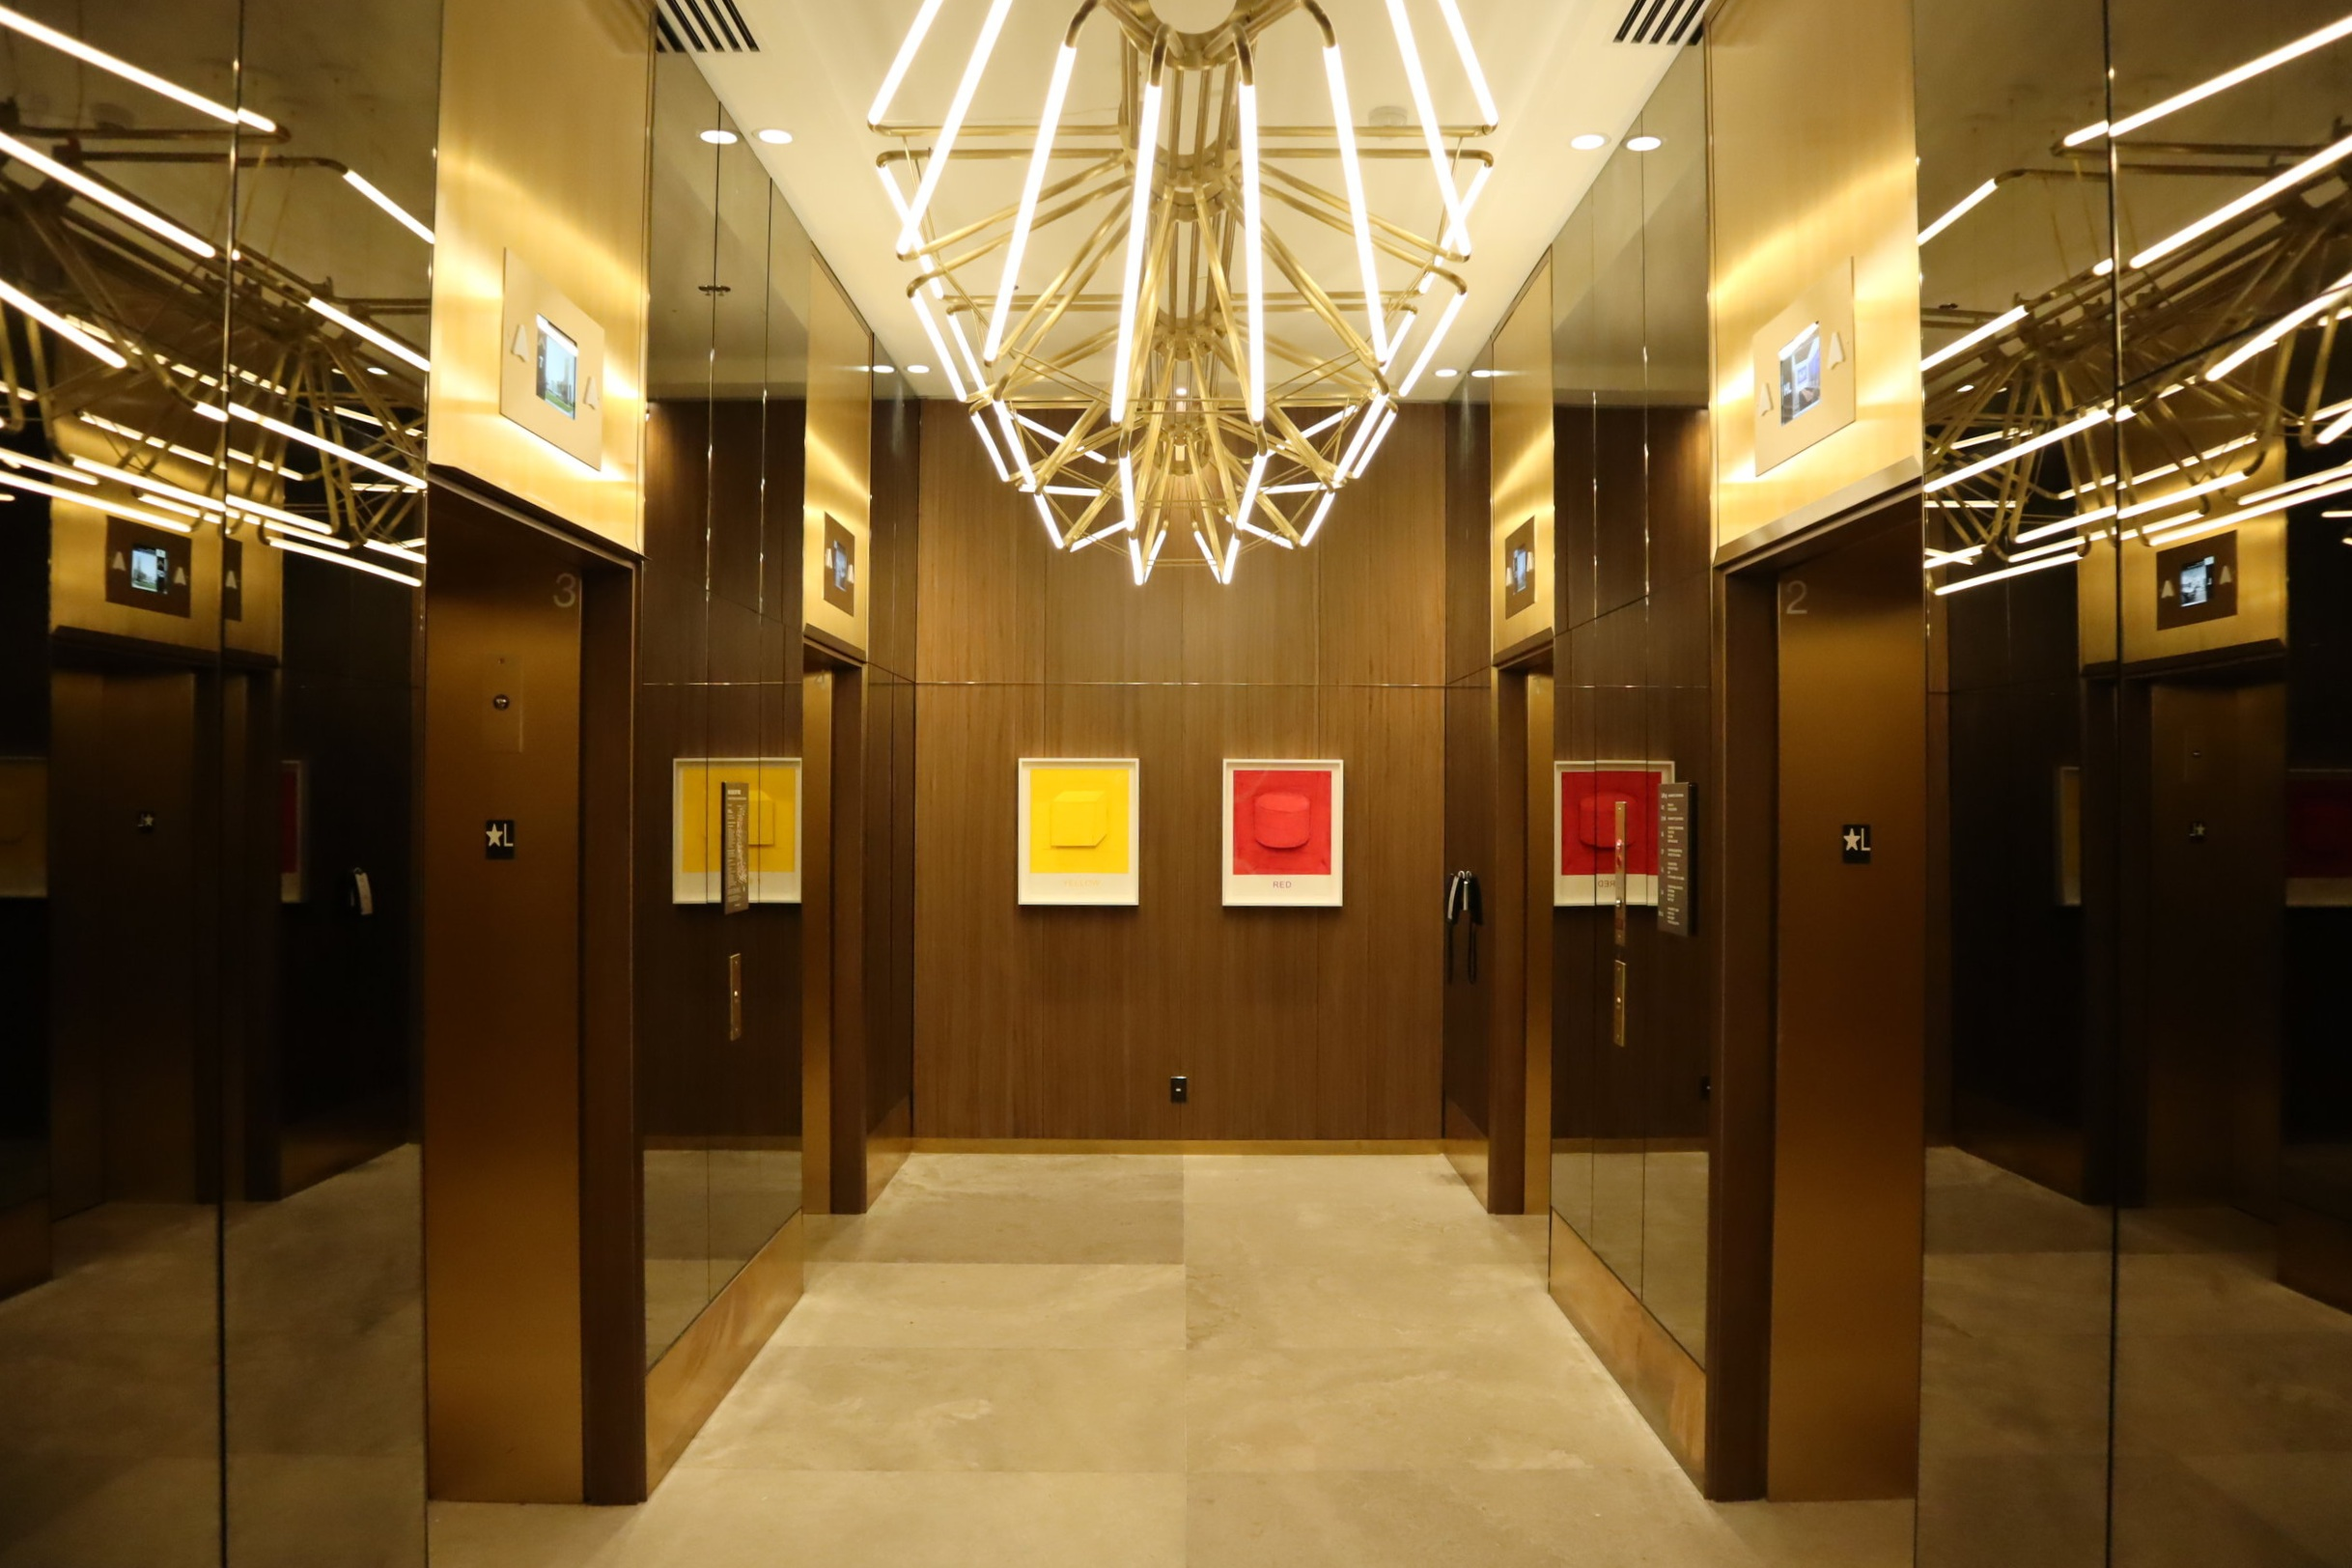 JW Marriott Parq Vancouver – Elevators